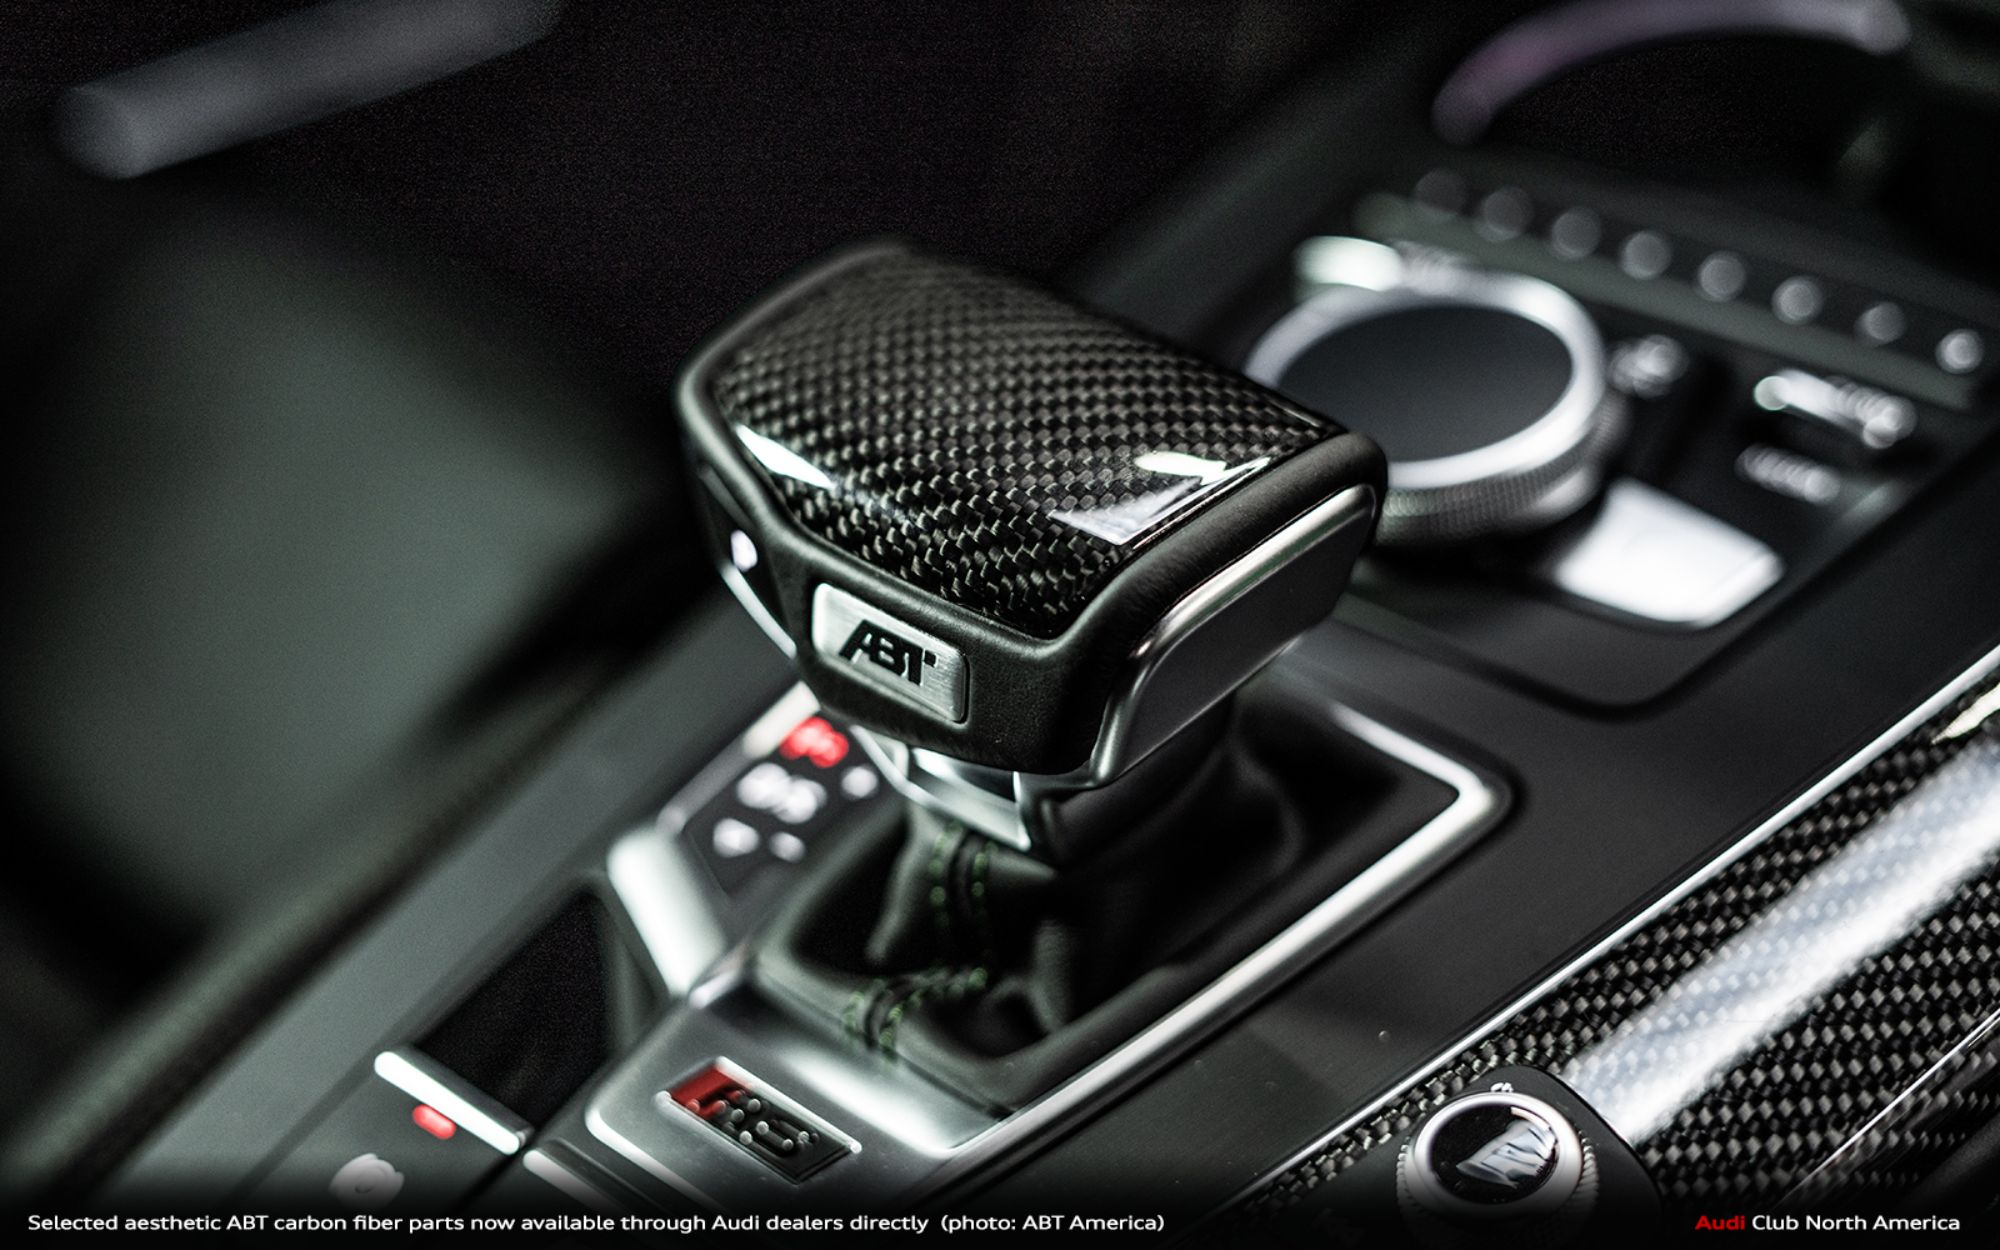 You Can Now Get Selected ABT Carbon Fiber Parts Directly From Your Audi Dealer